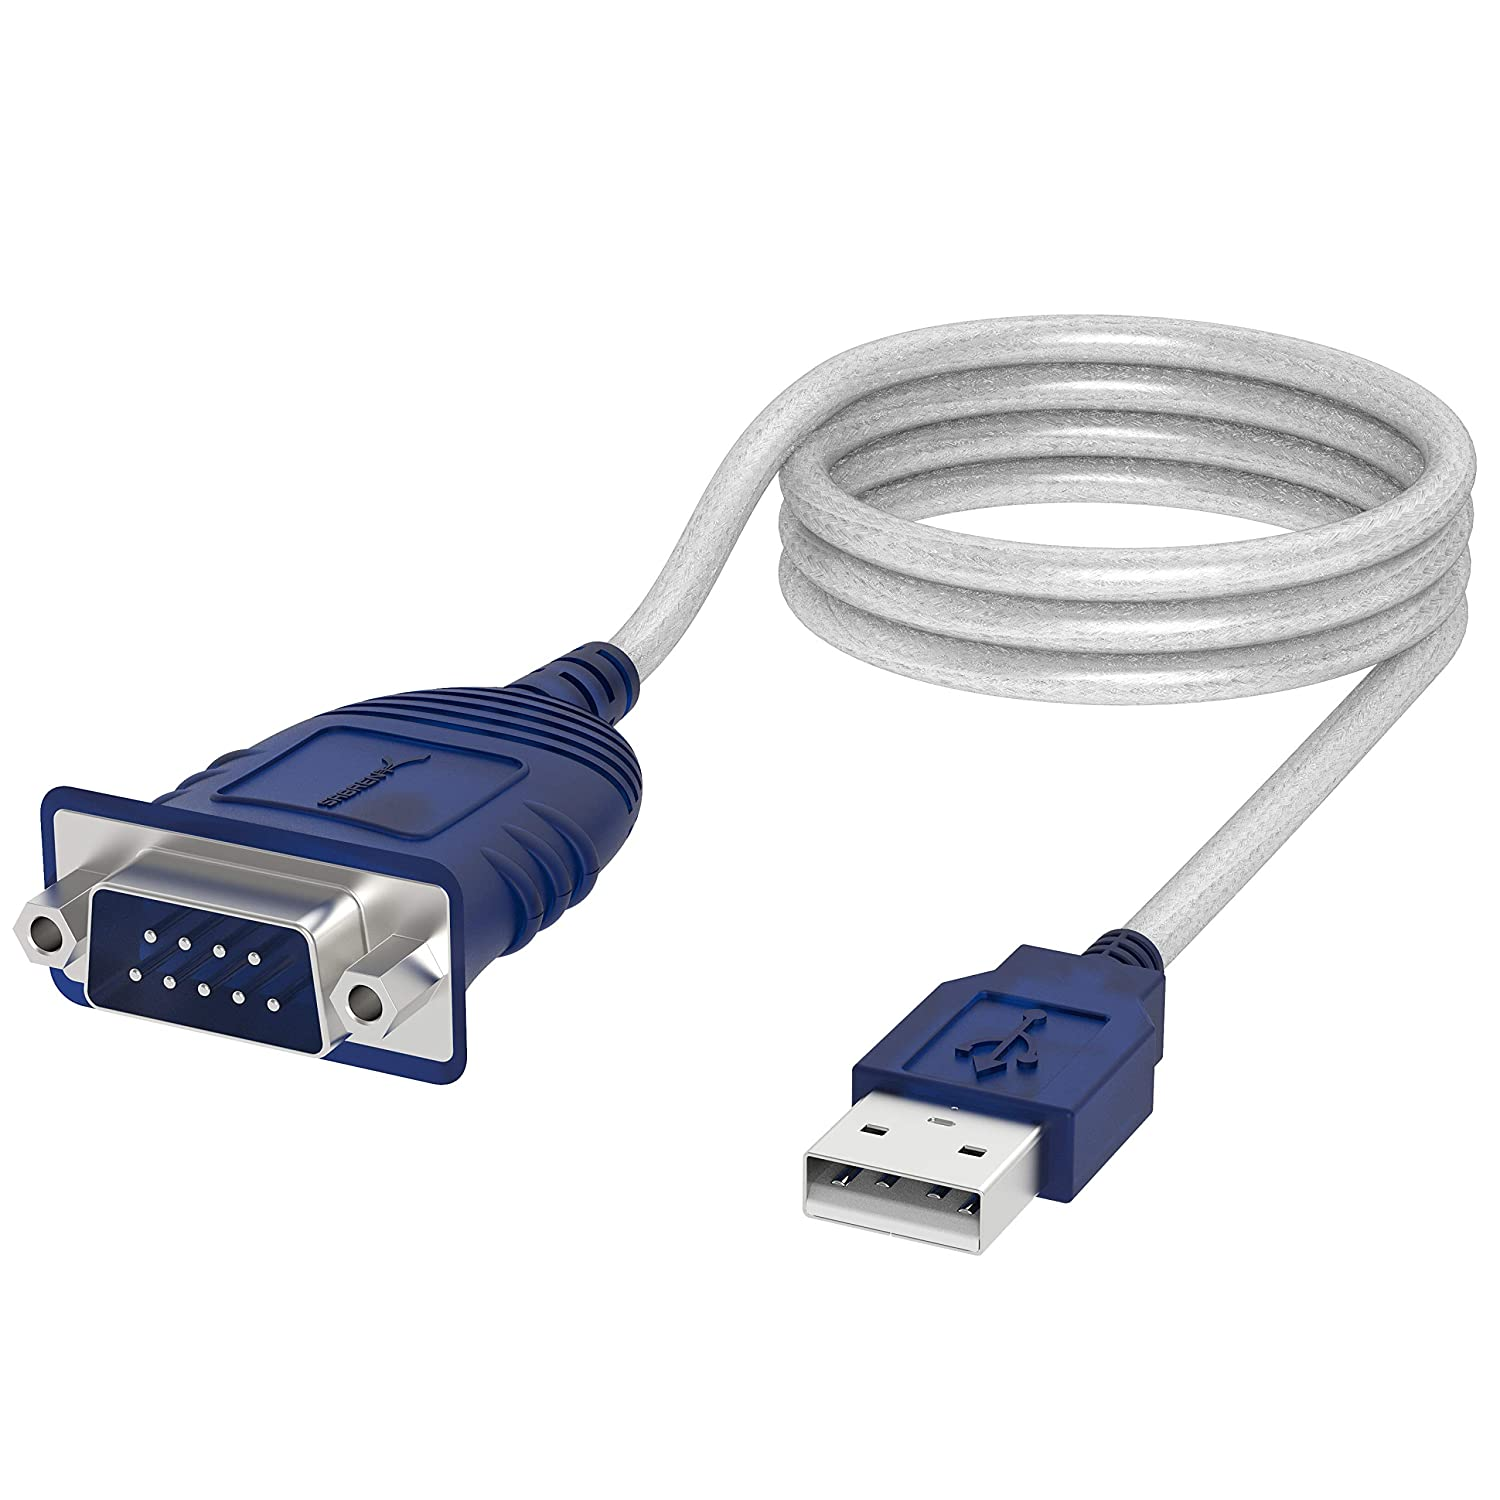 Cable Convertidor Usb 2.0 A Serial 9-pin Db-9 Rs-232 1.8mts